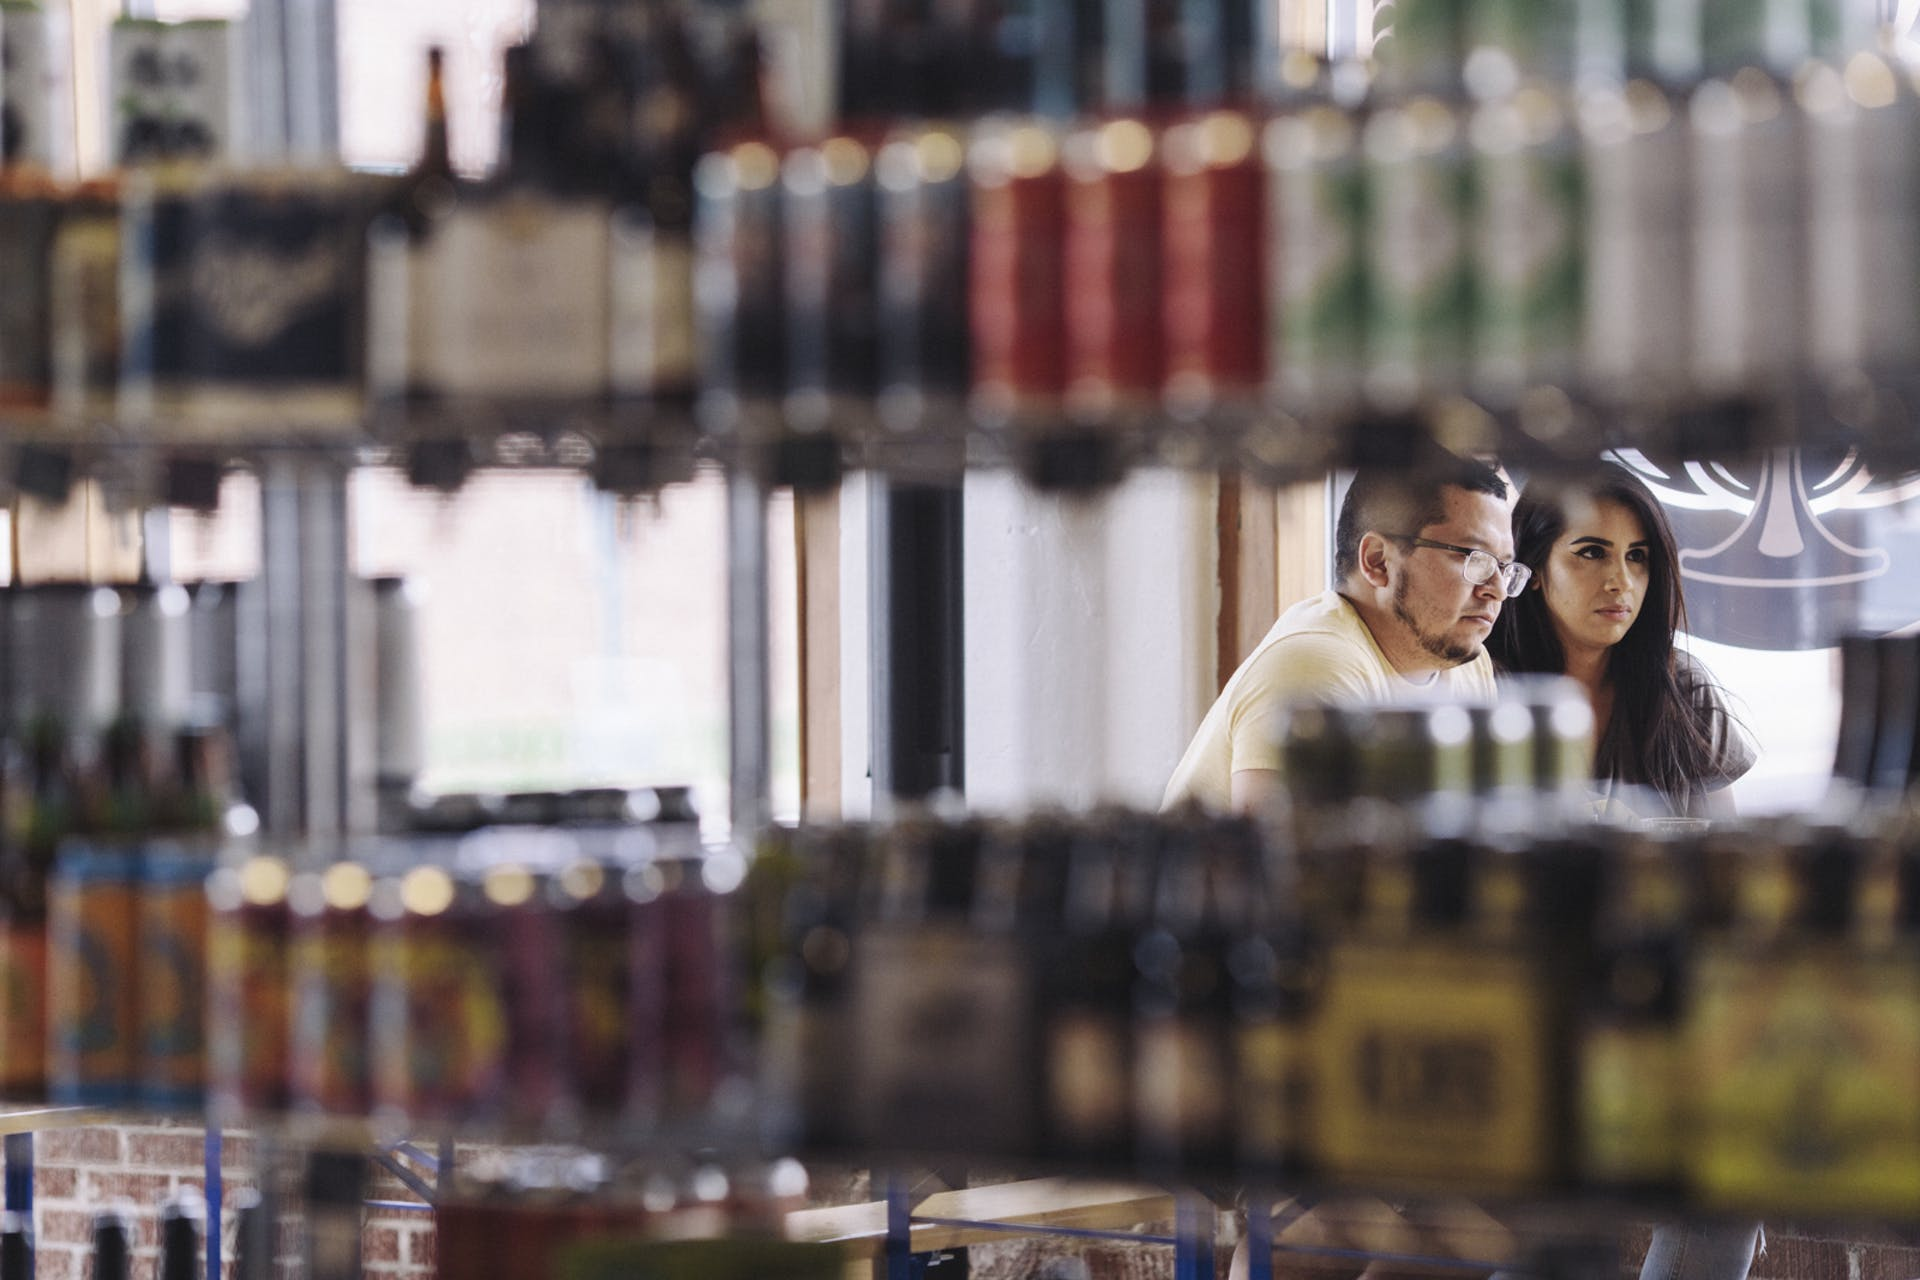 Customers in the bottle shop